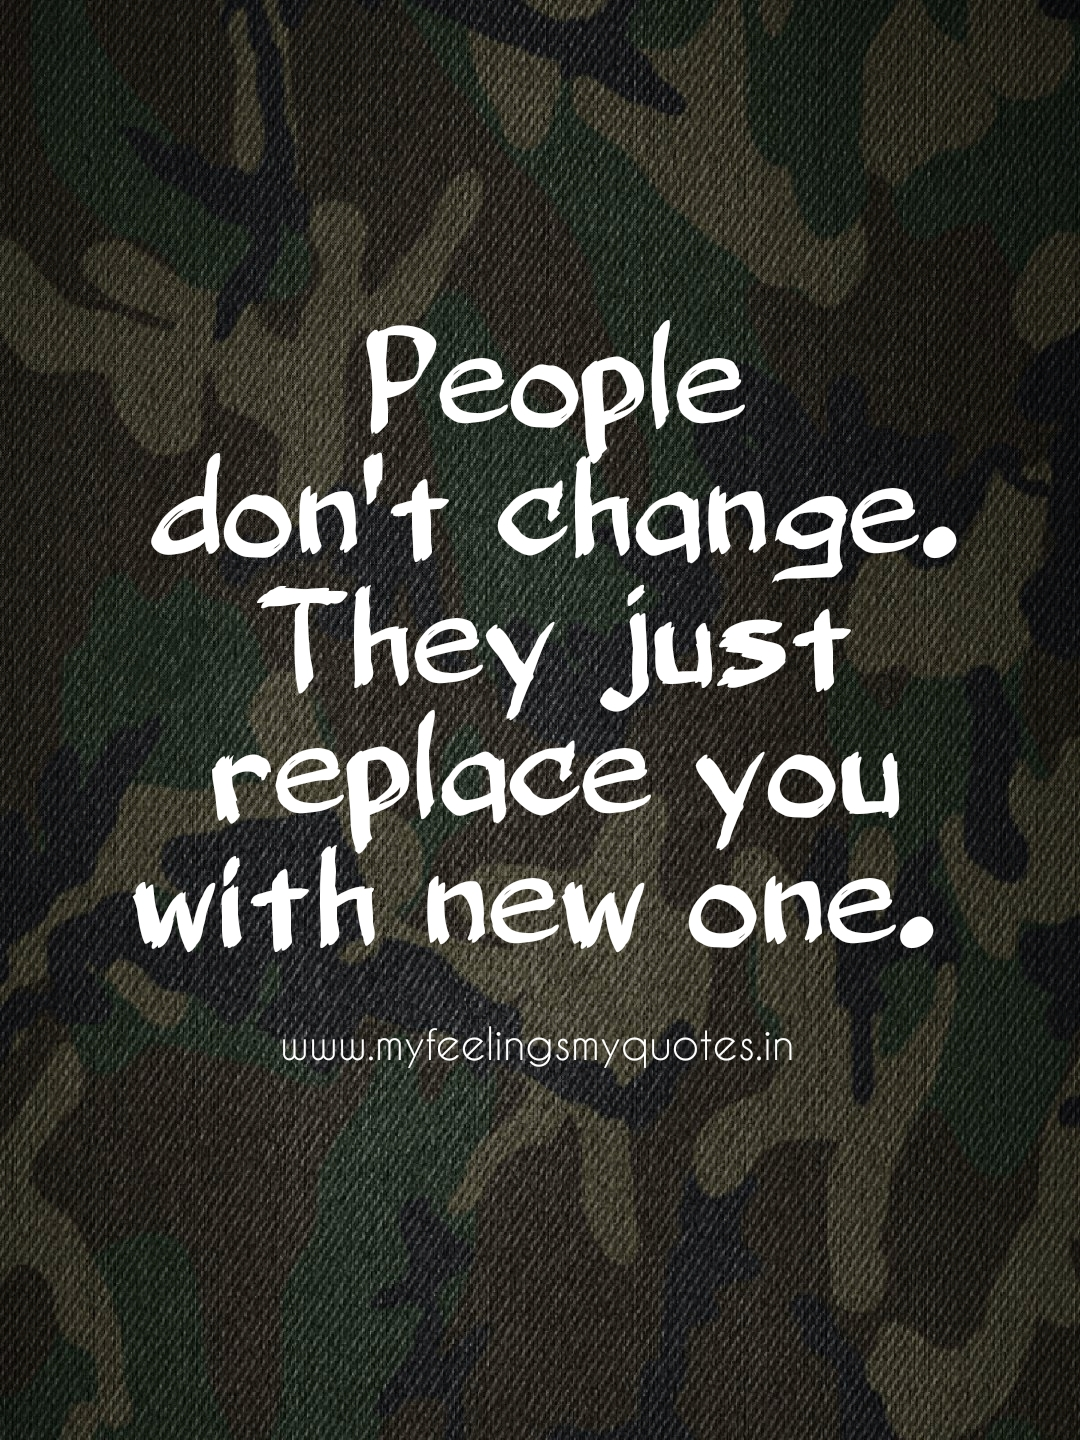 People Dont Change My Feelings My Quotes